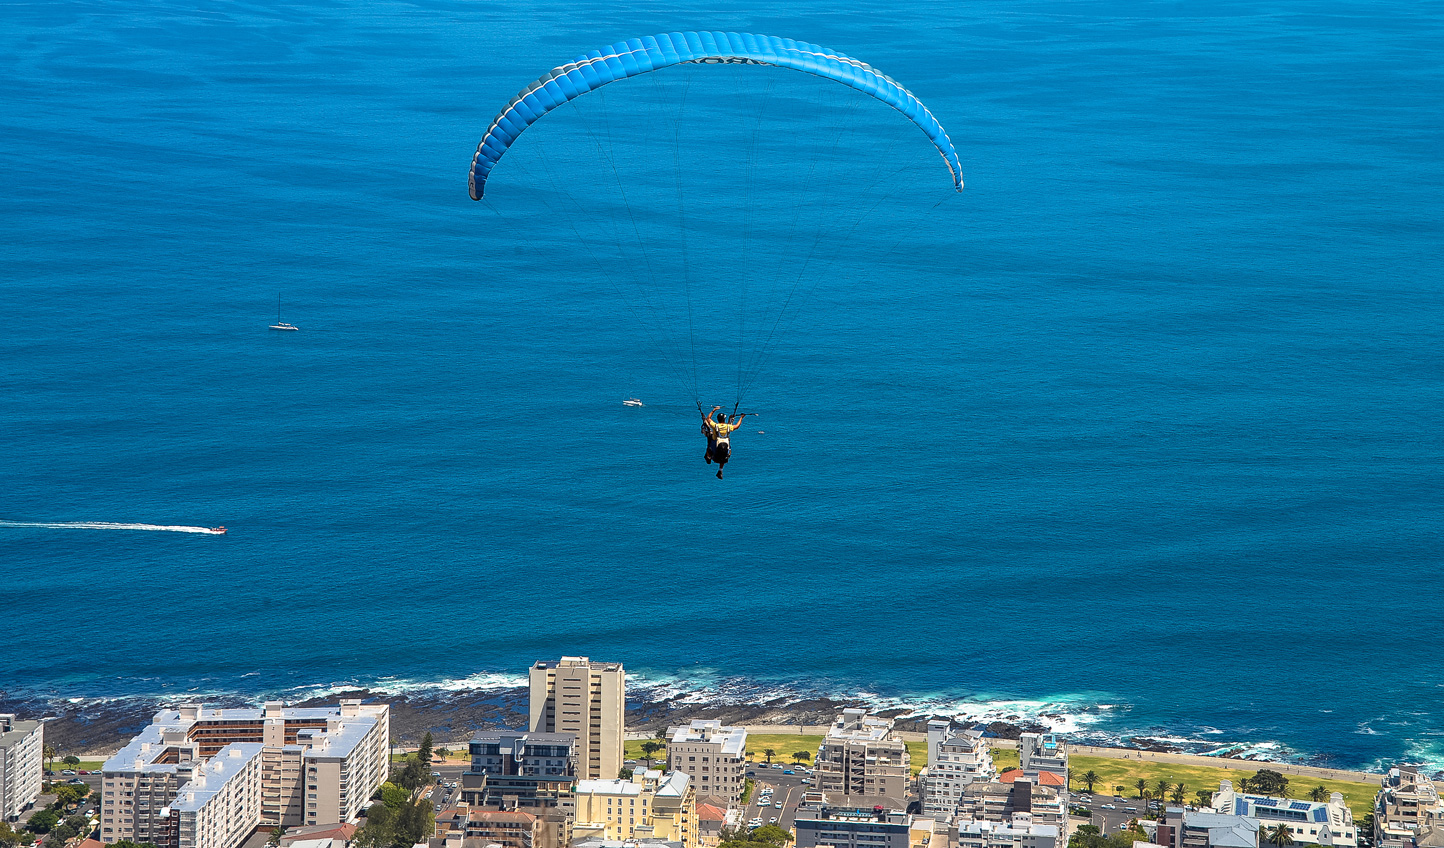 Take off on a paragliding adventure